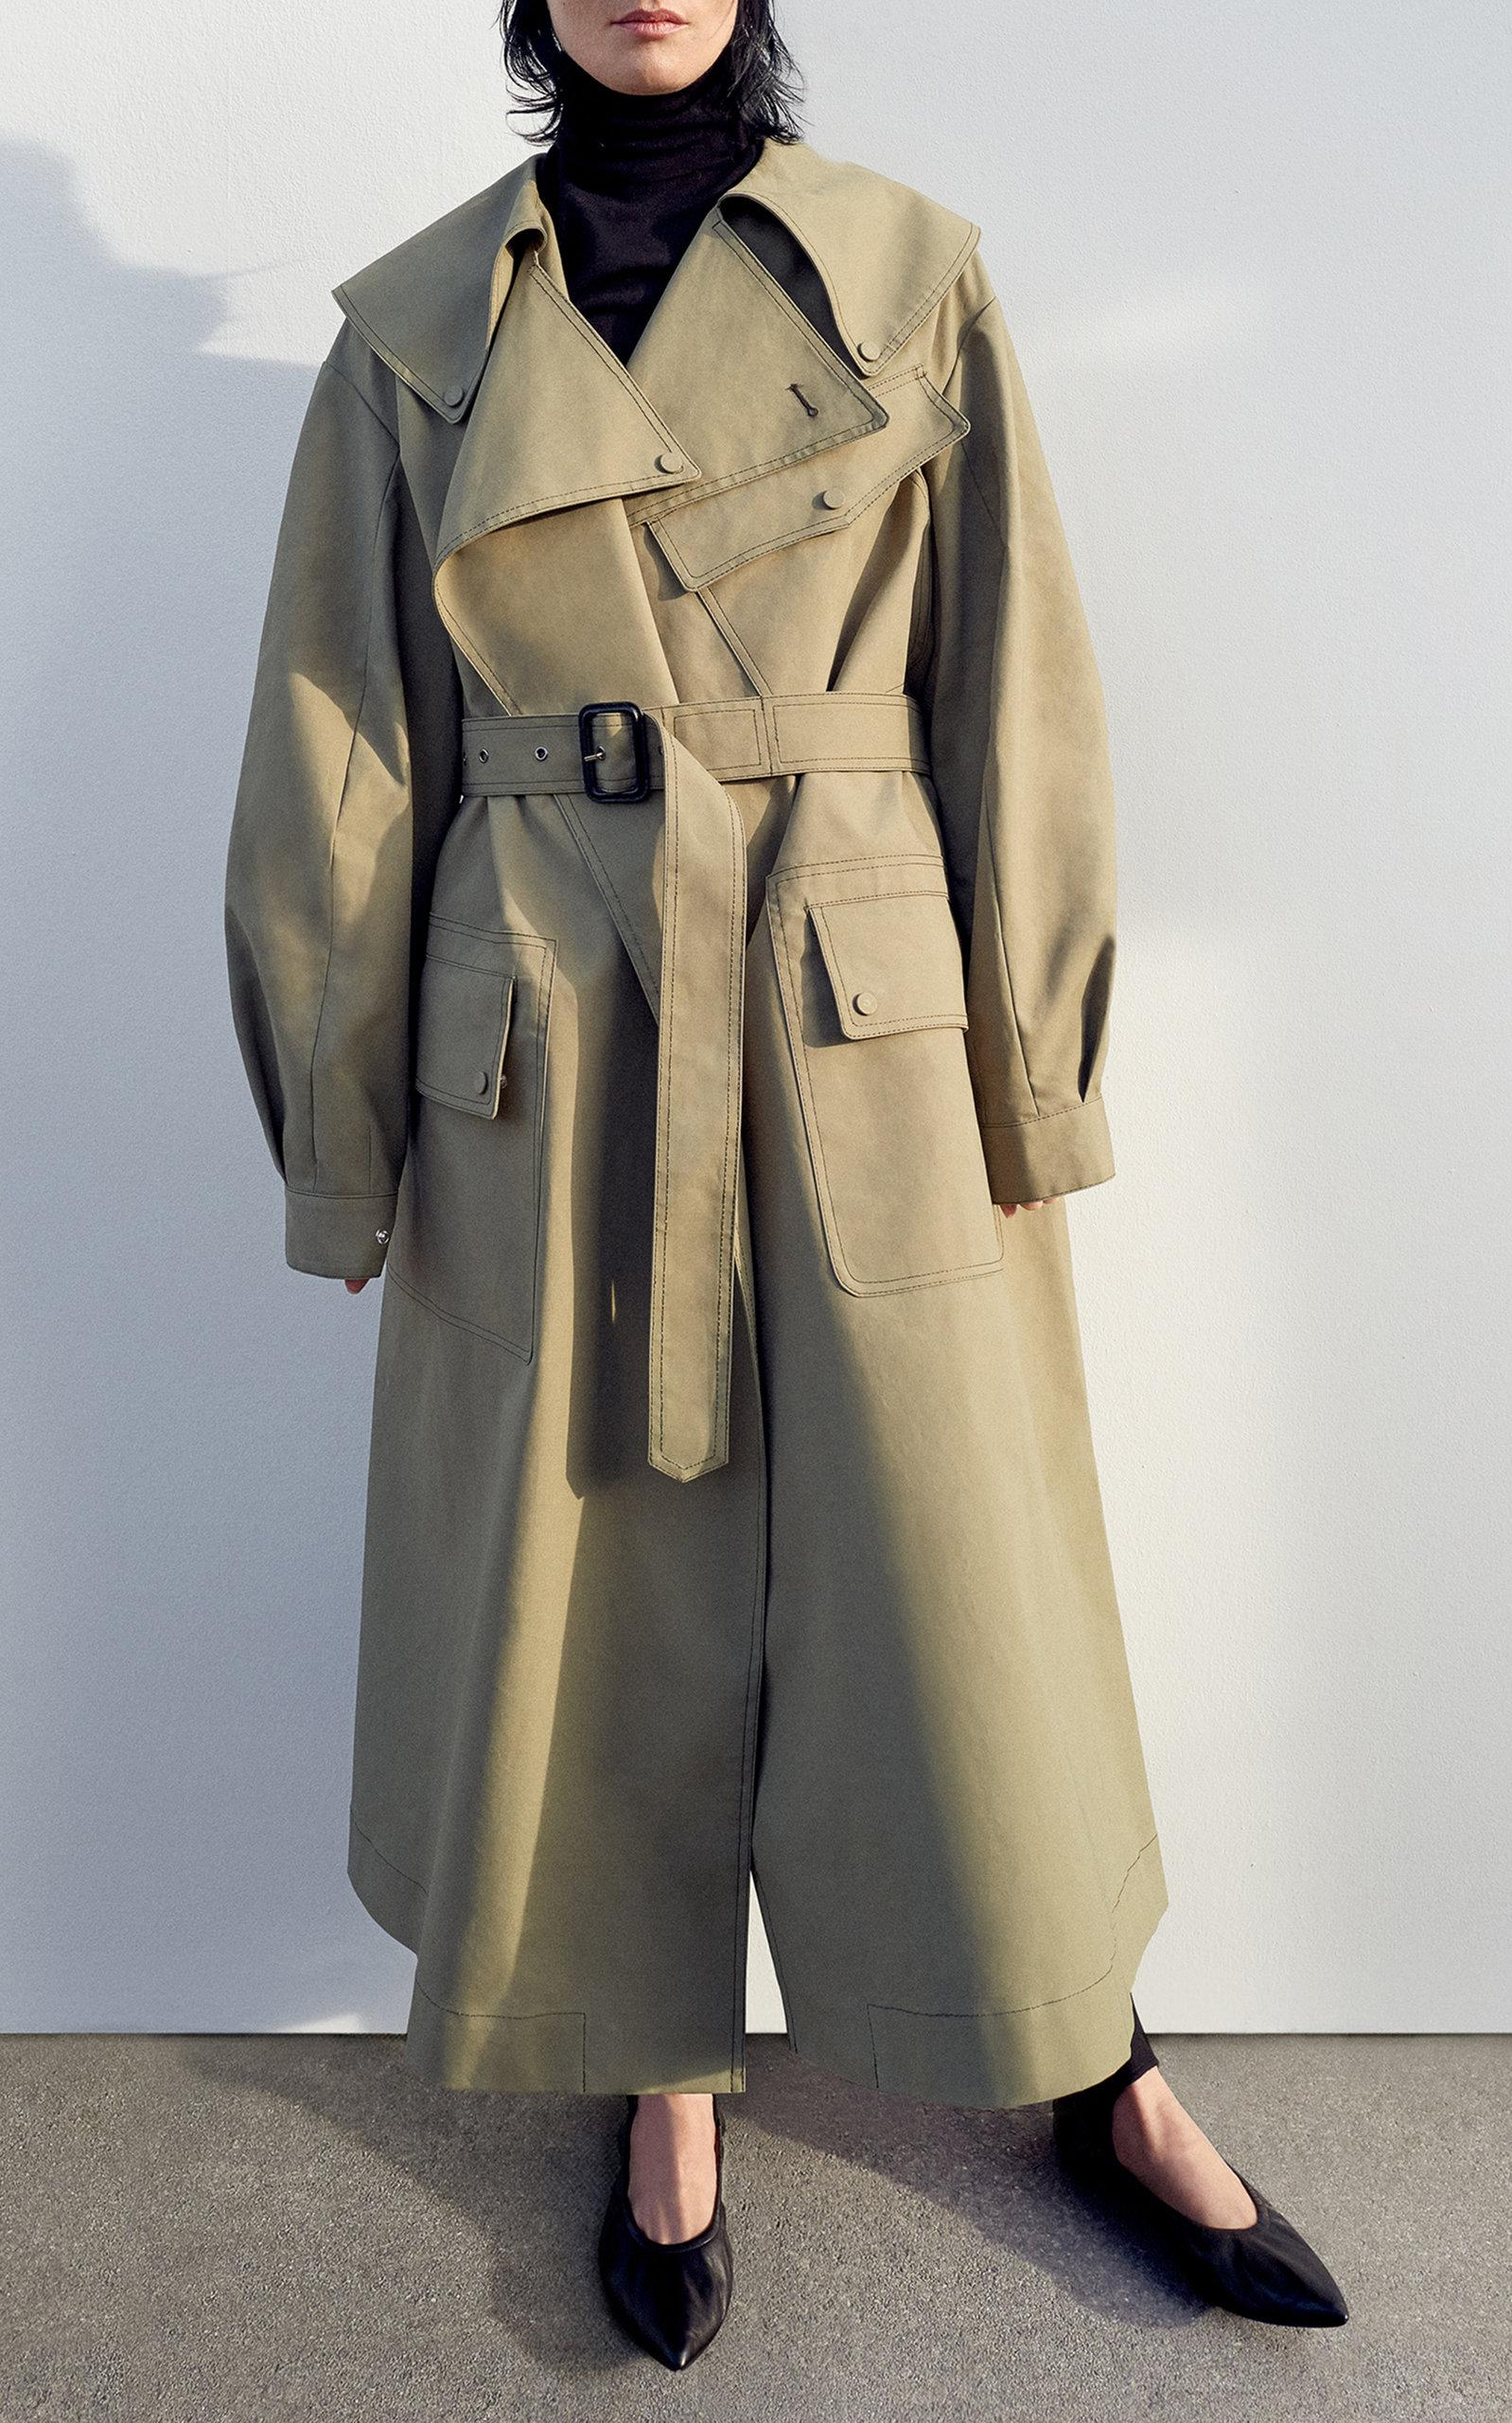 Discount Wiki Best Prices Cheap Online Damon trench coat - Green Joseph Amazing Price Sale Online Clearance Best Place 0LGRwWut